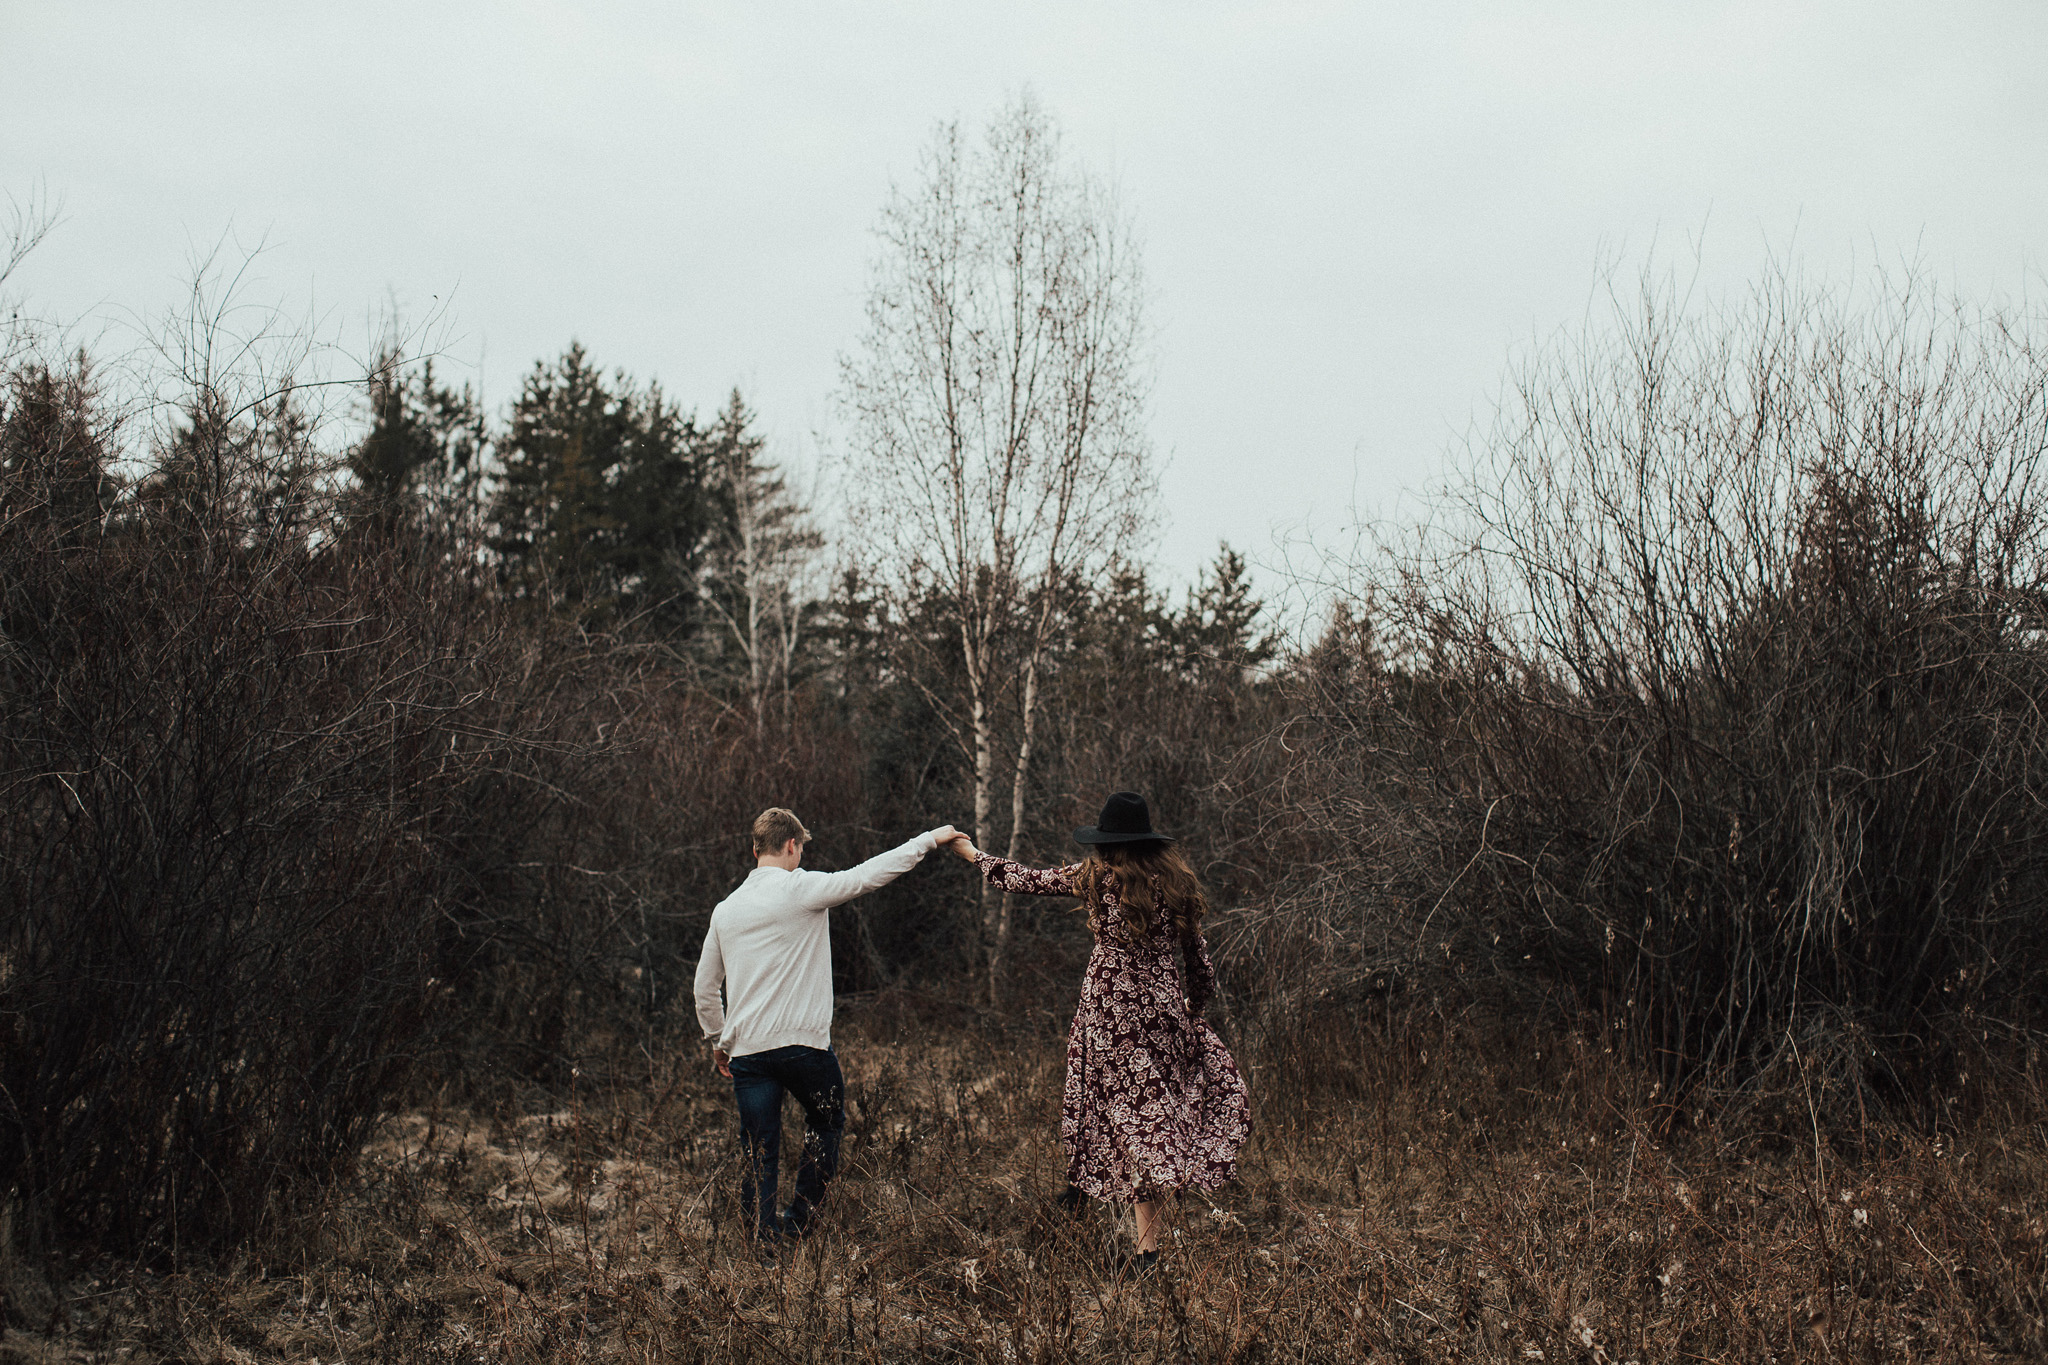 Edmonton Engagement Photographer - Michelle Larmand Photography - Mossy woods engagement session009